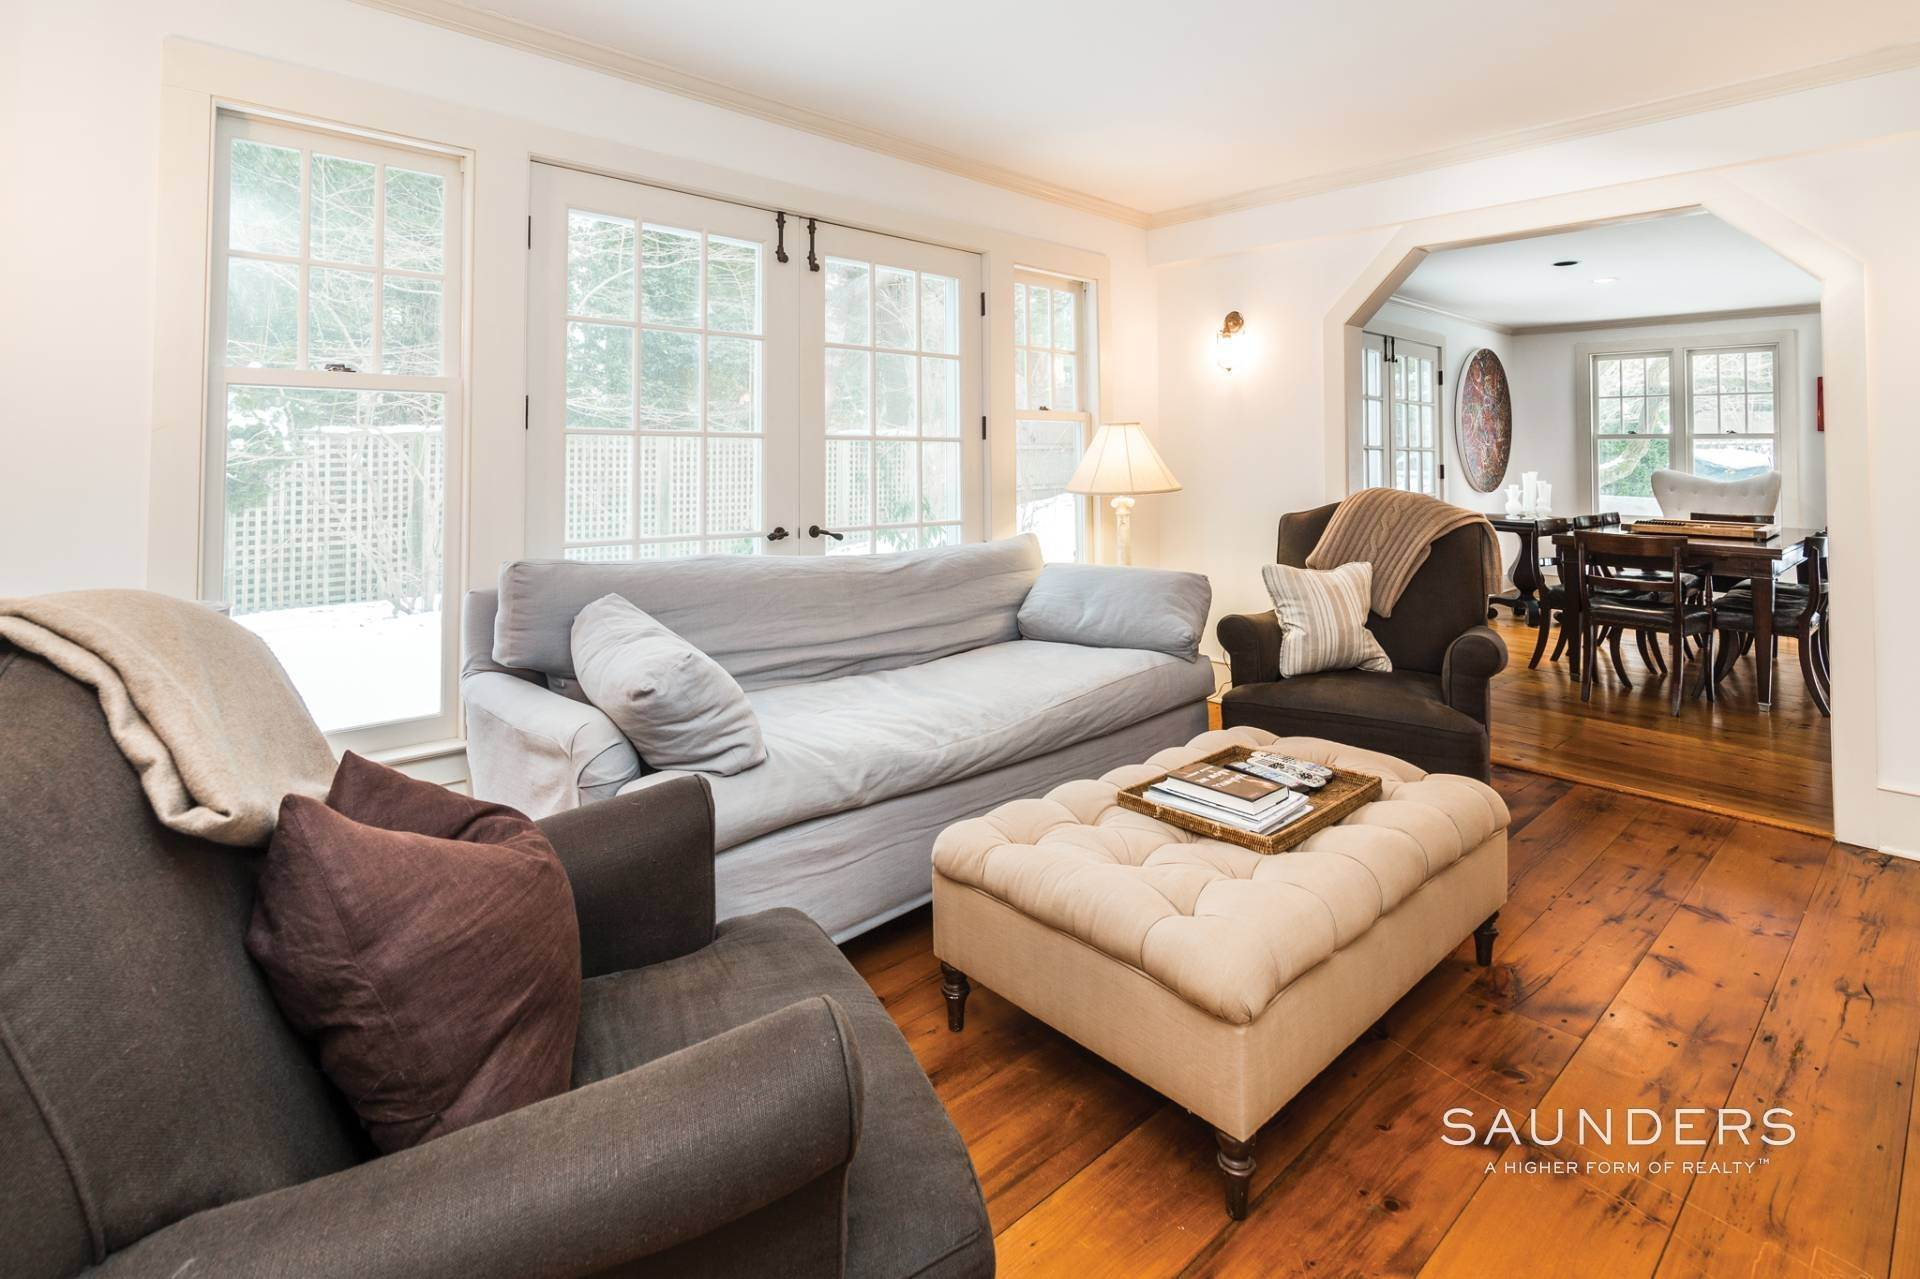 4. Single Family Homes for Sale at Egypt Lane Charmer 24 Egypt Lane, East Hampton, East Hampton Town, NY 11937